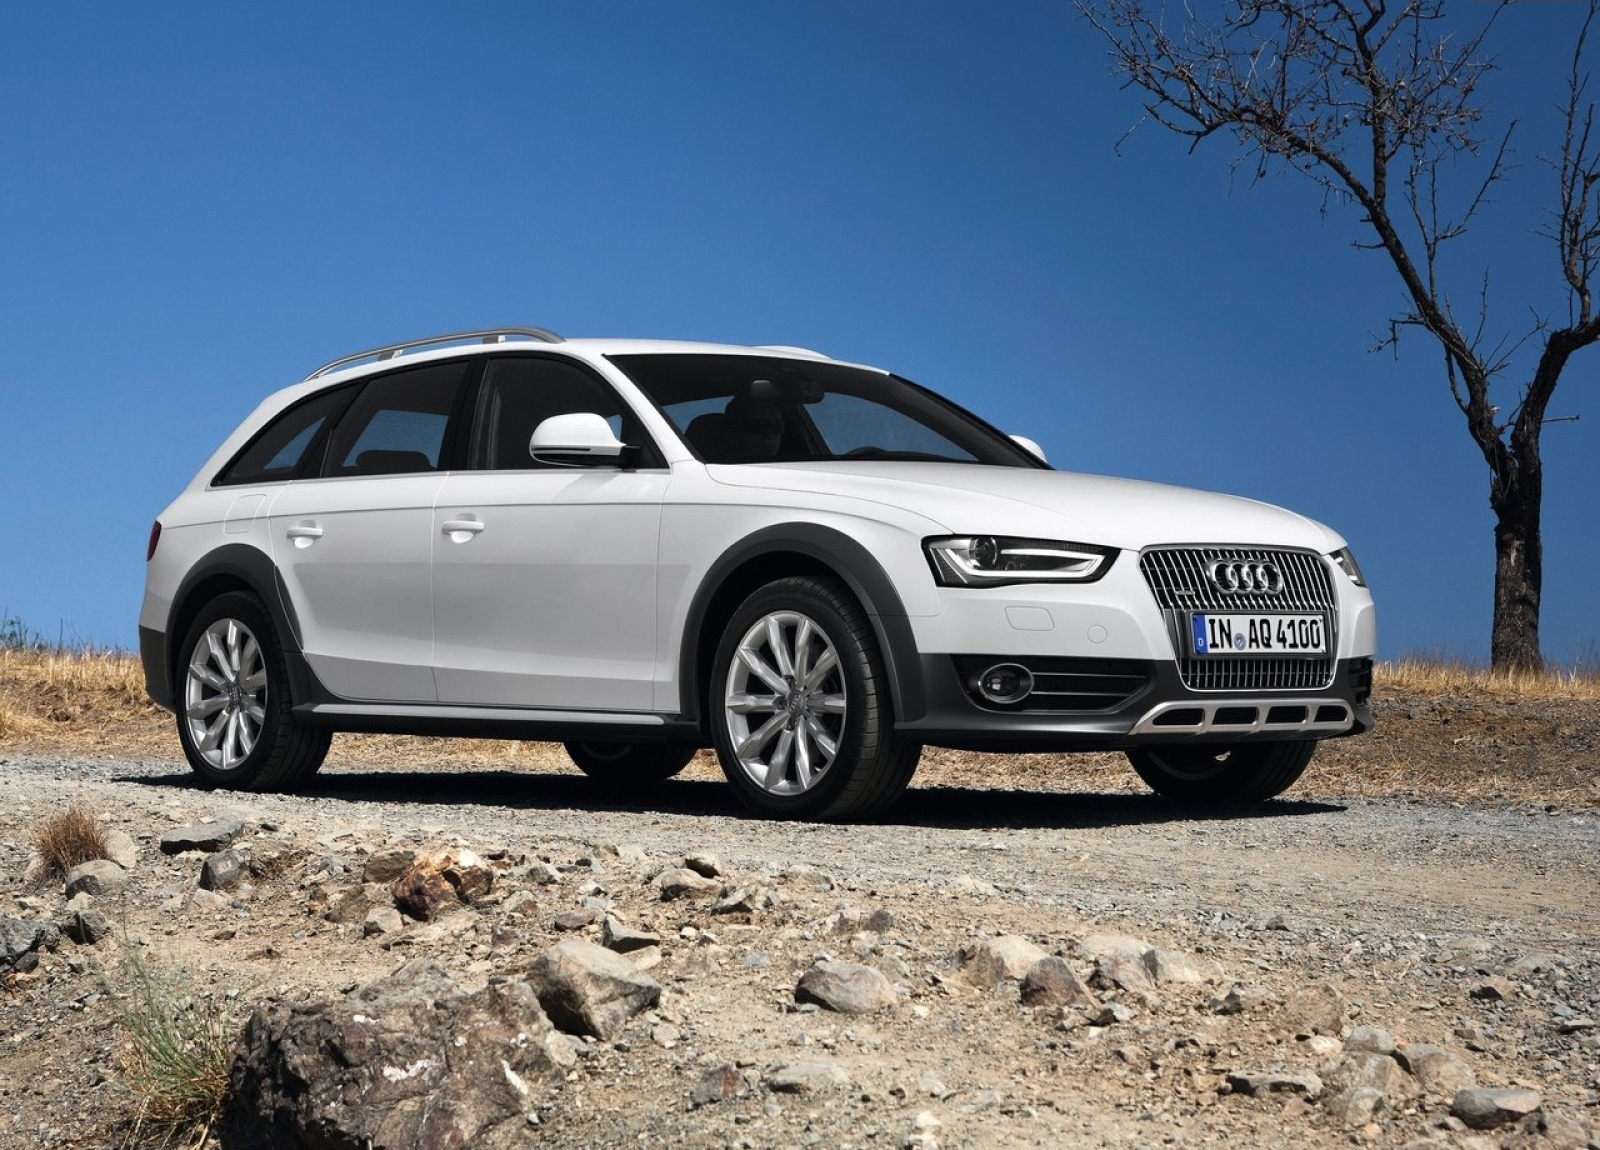 audi a4 allroad 3 0 tdi technical specifications technical data the world of audi. Black Bedroom Furniture Sets. Home Design Ideas